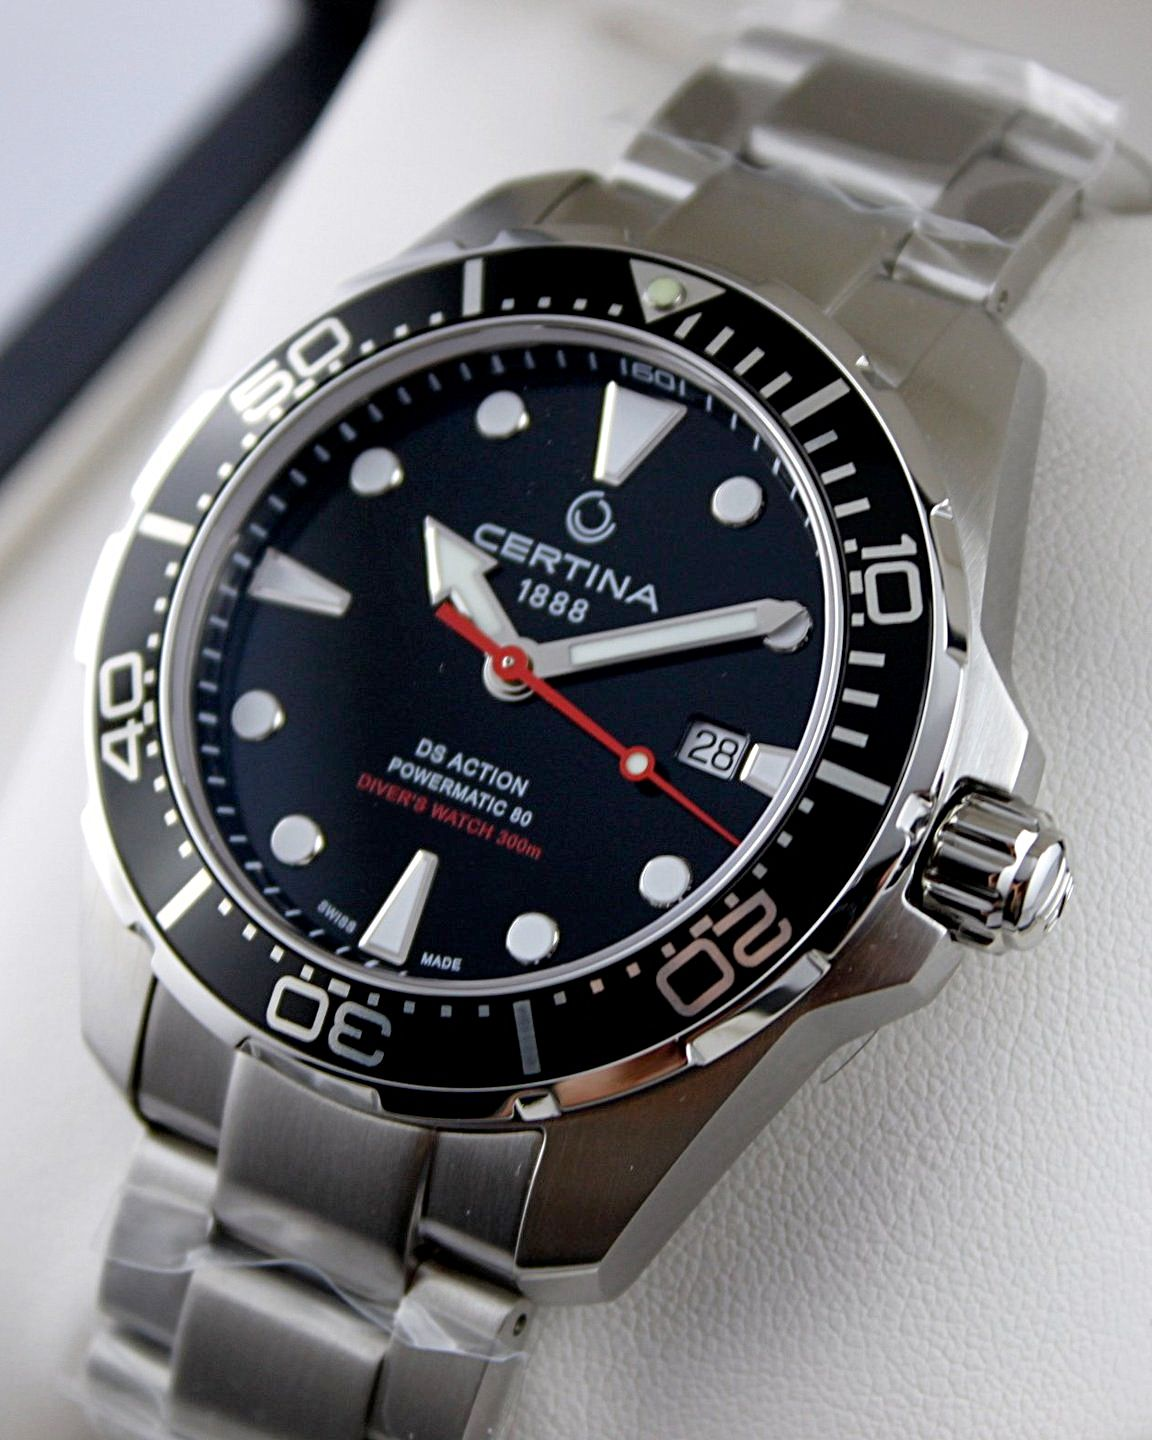 Certina Ds Action Diver Iso 6245 Dive Watch Dive Watches Rolex Watches Watches